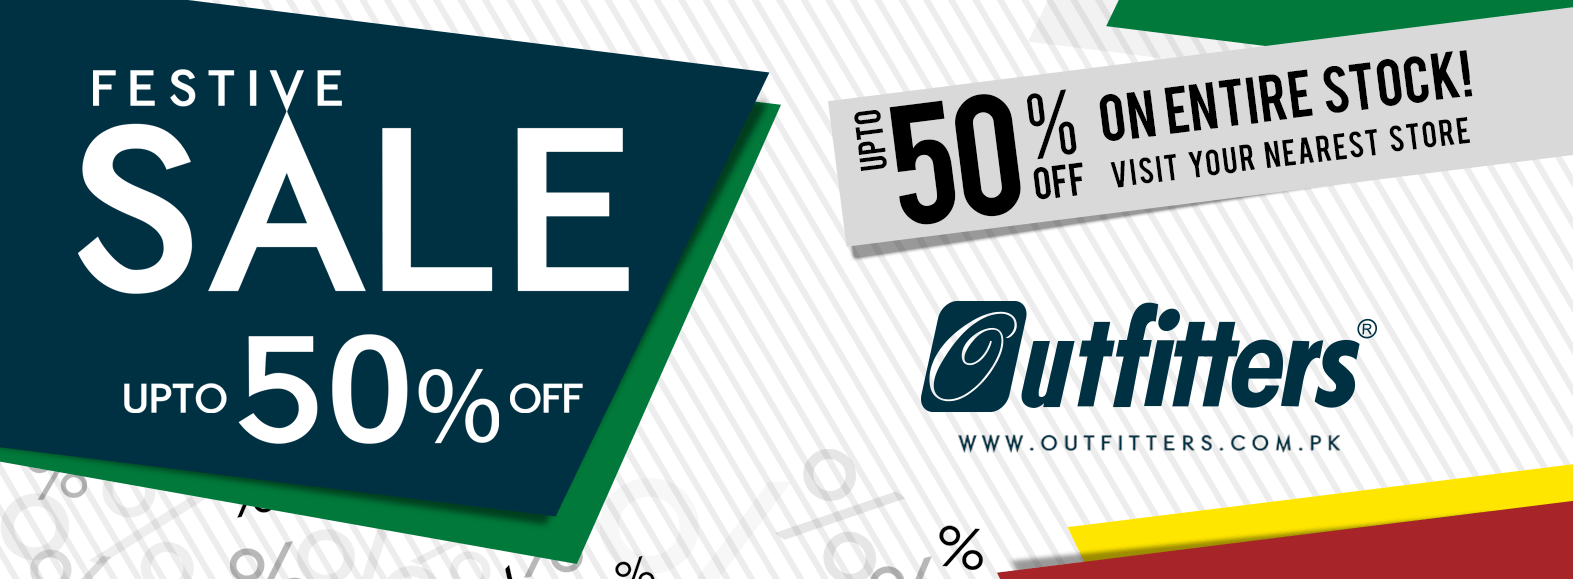 Outfitters august sale